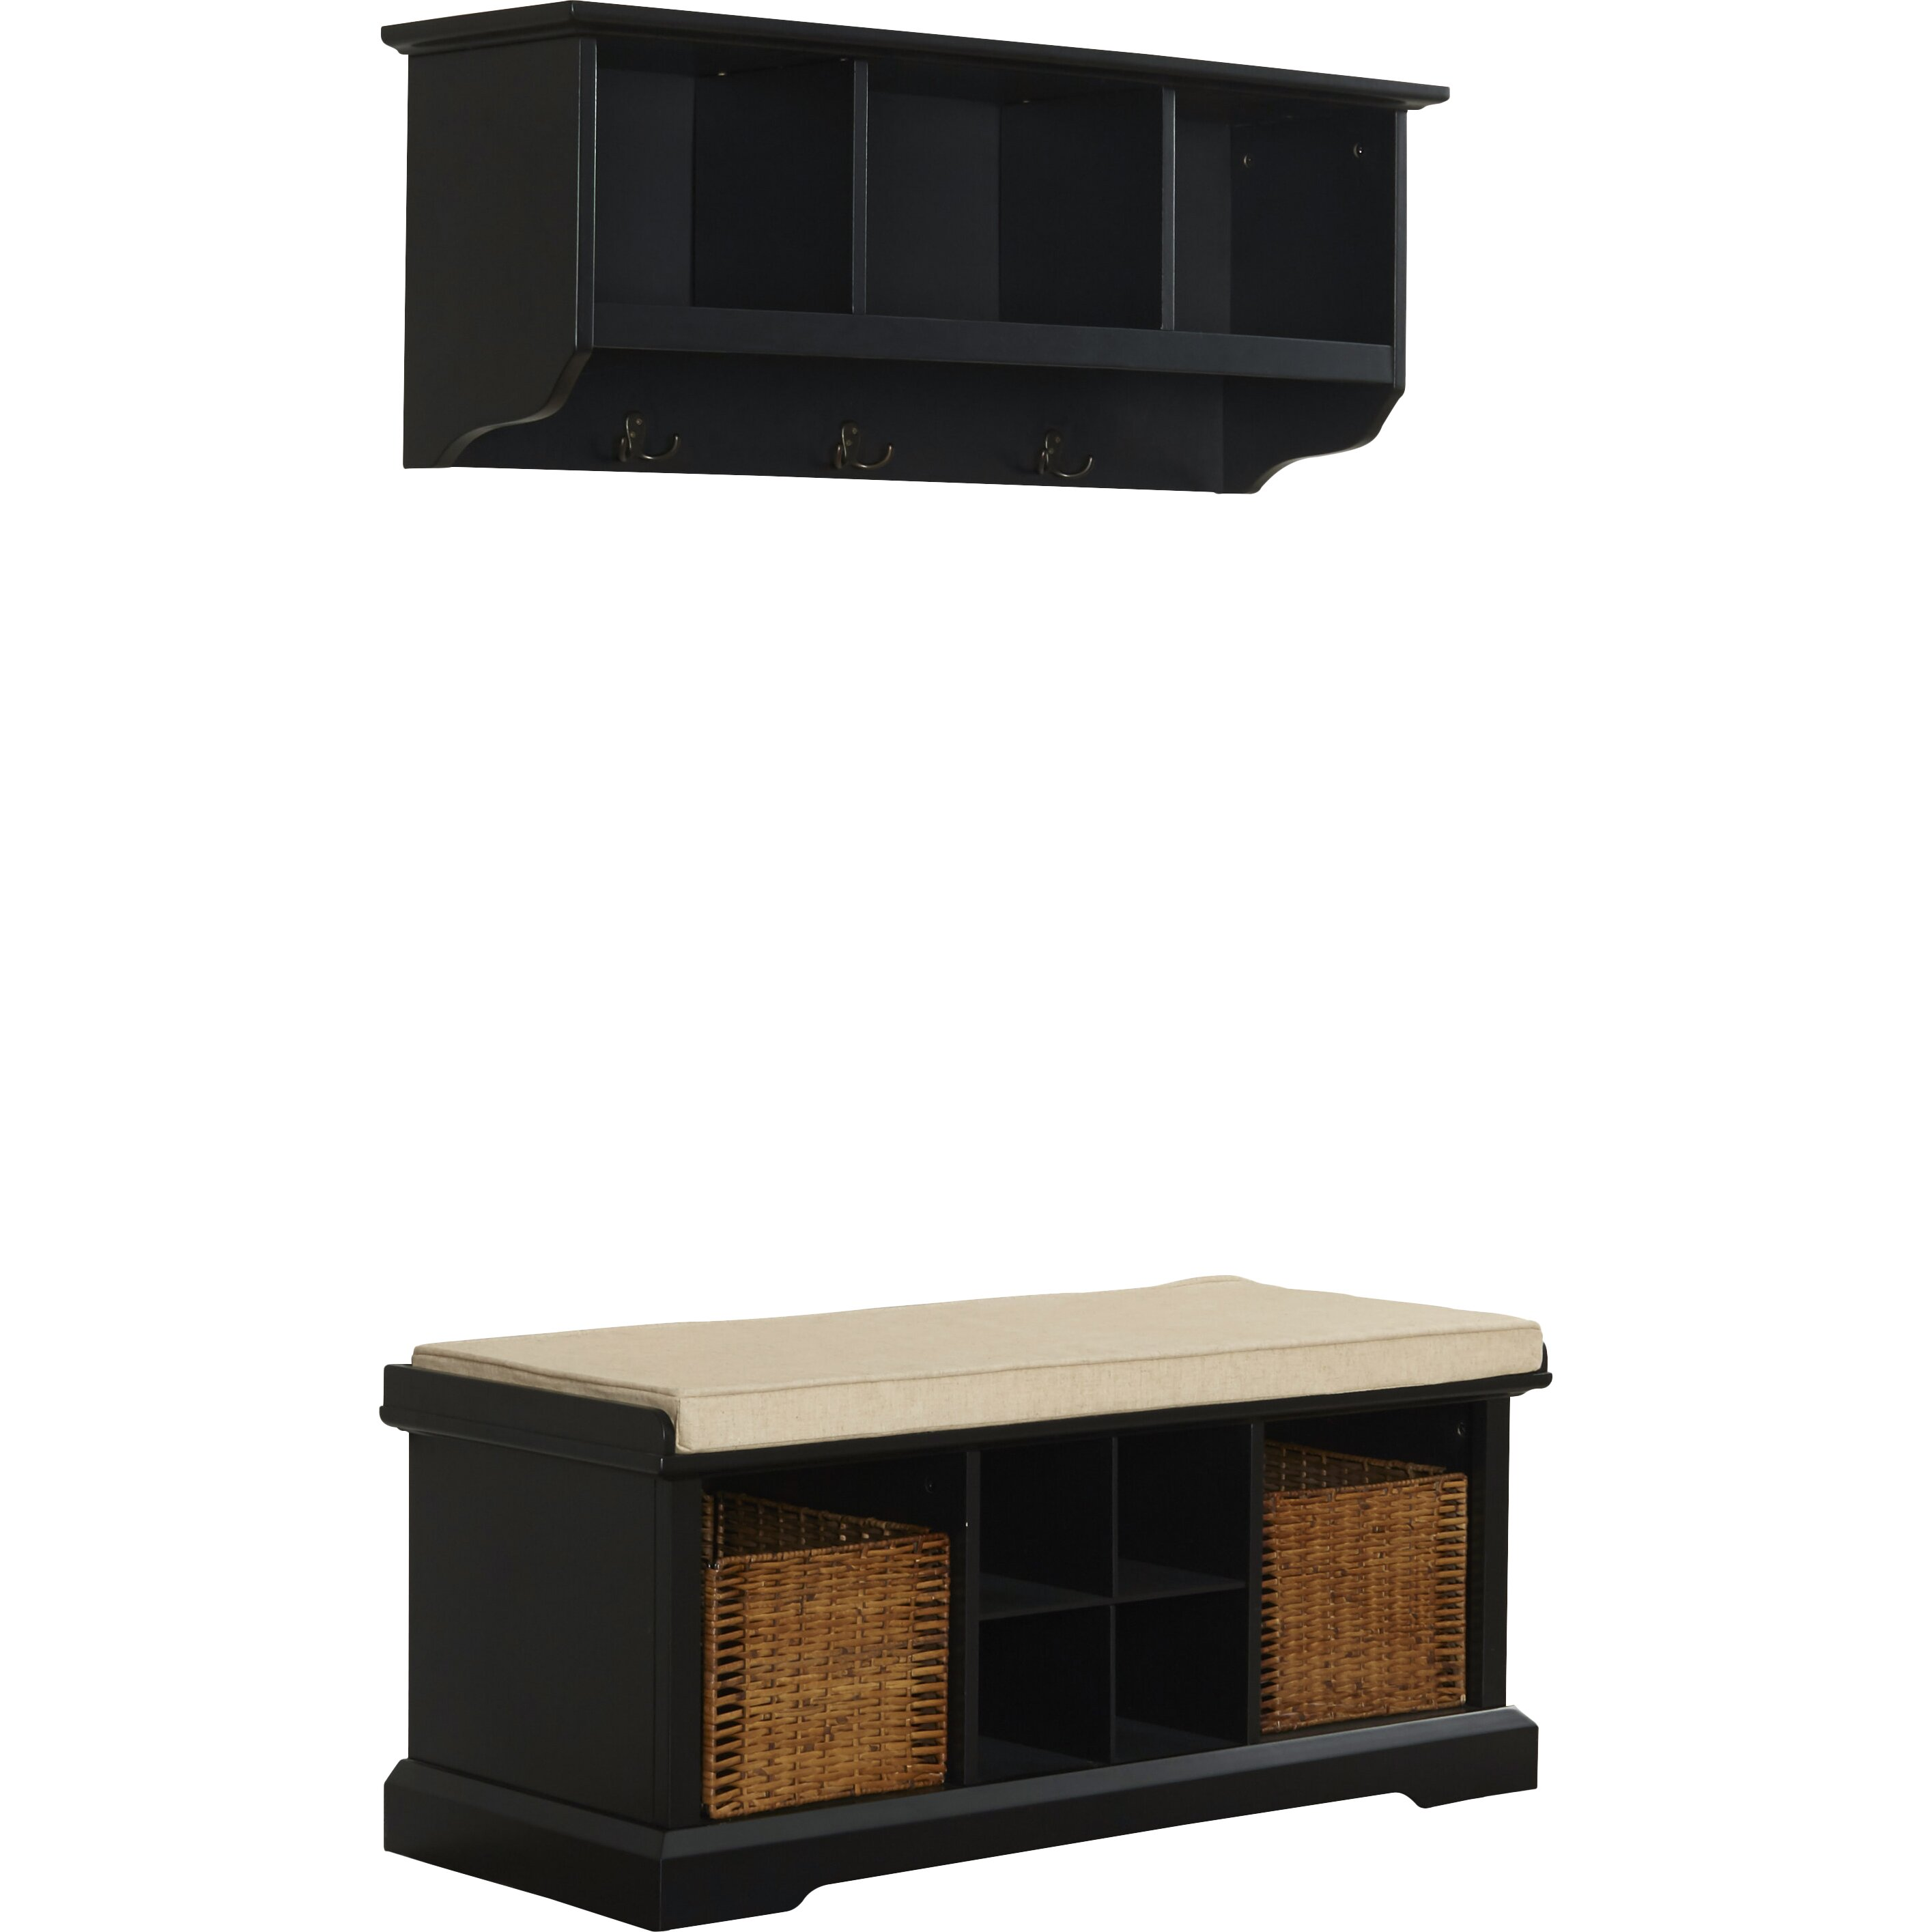 Breakwater Bay Selbyville Wood Storage Bench Shelf Set